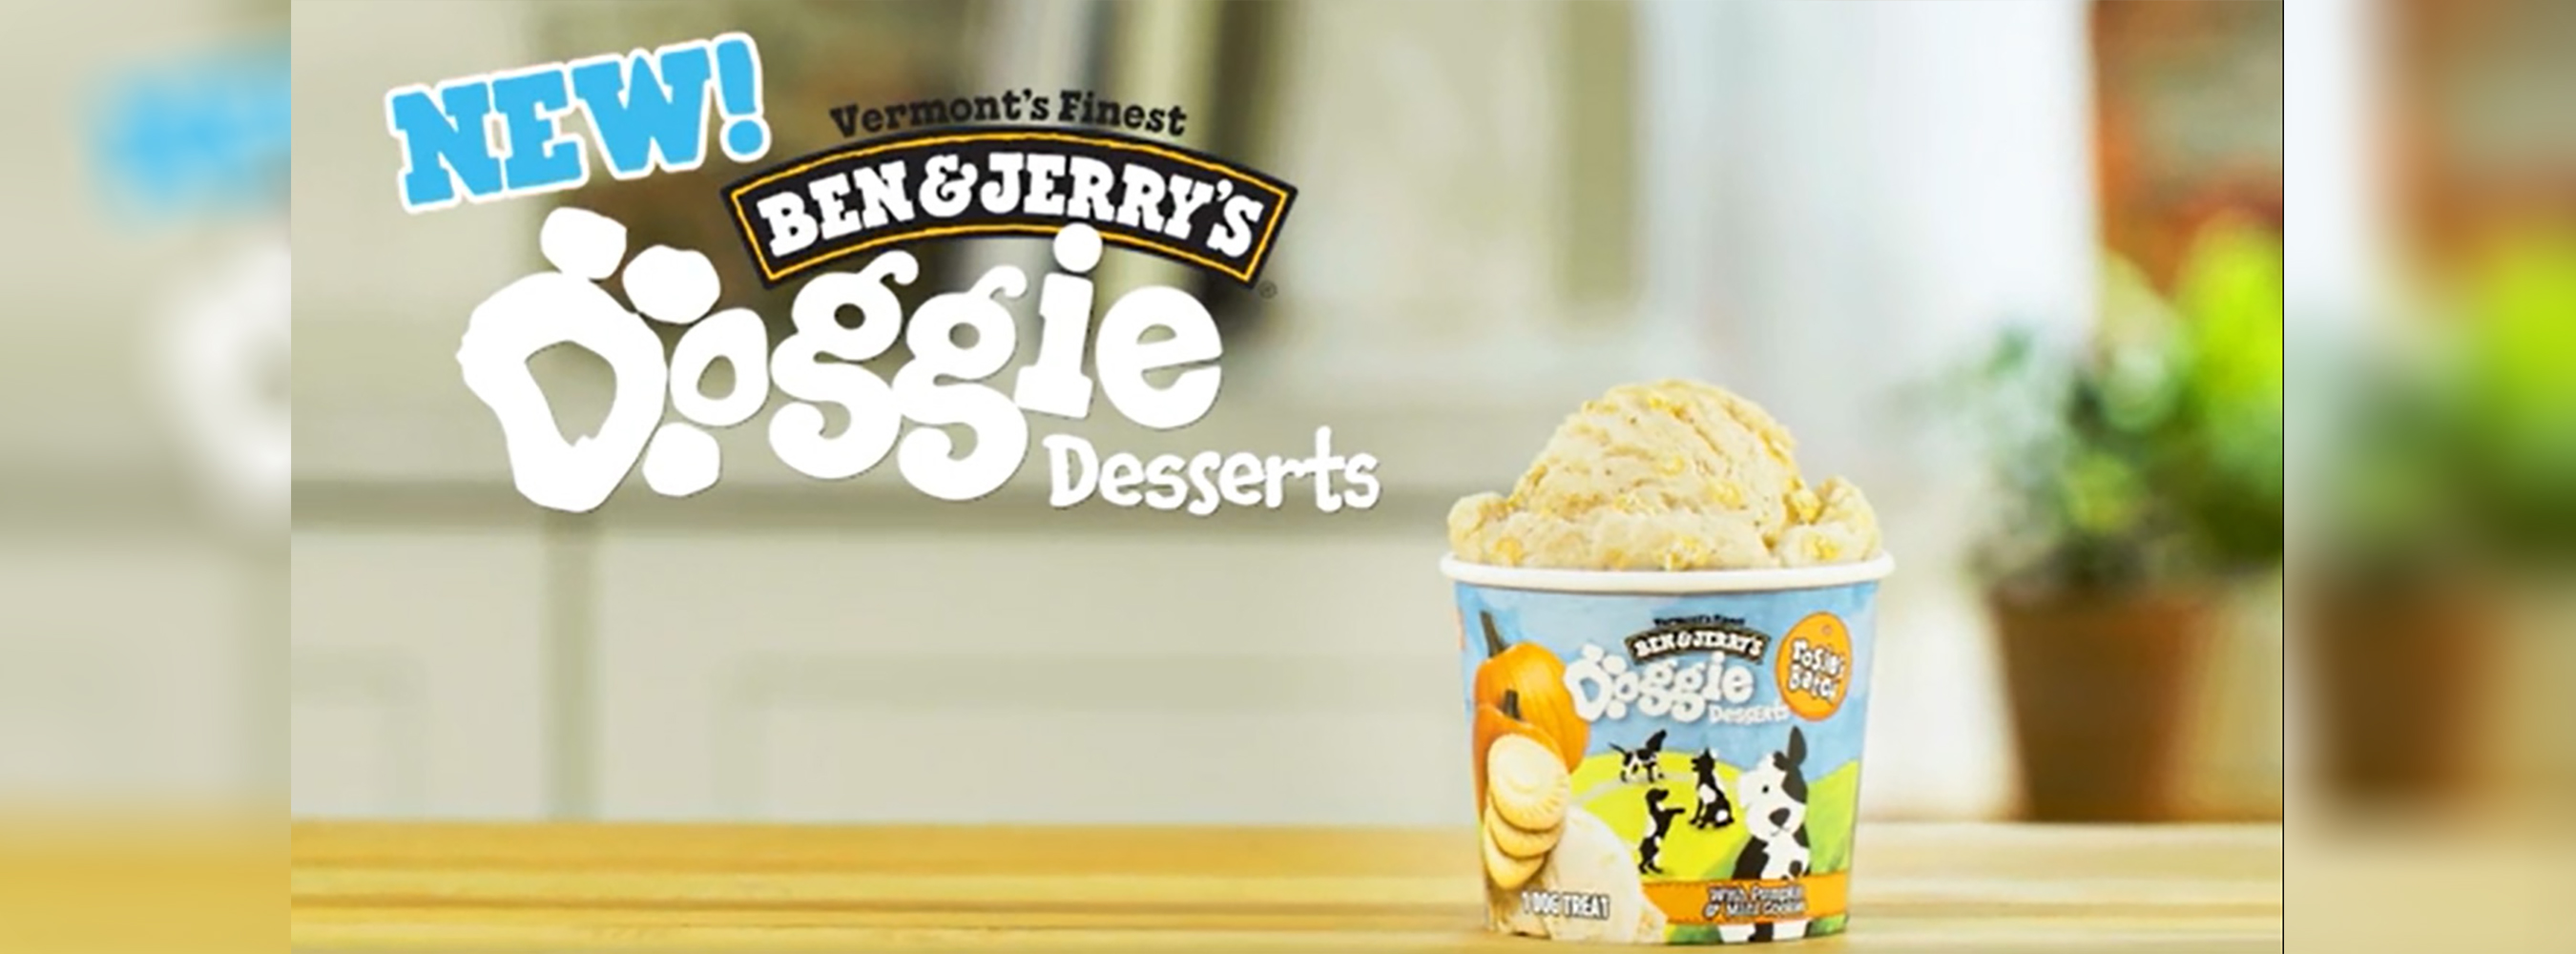 For the first time in the ice cream company's history, Ben & Jerry's is introducing two new flavors designed exclusively for canines--Doggie Desserts.